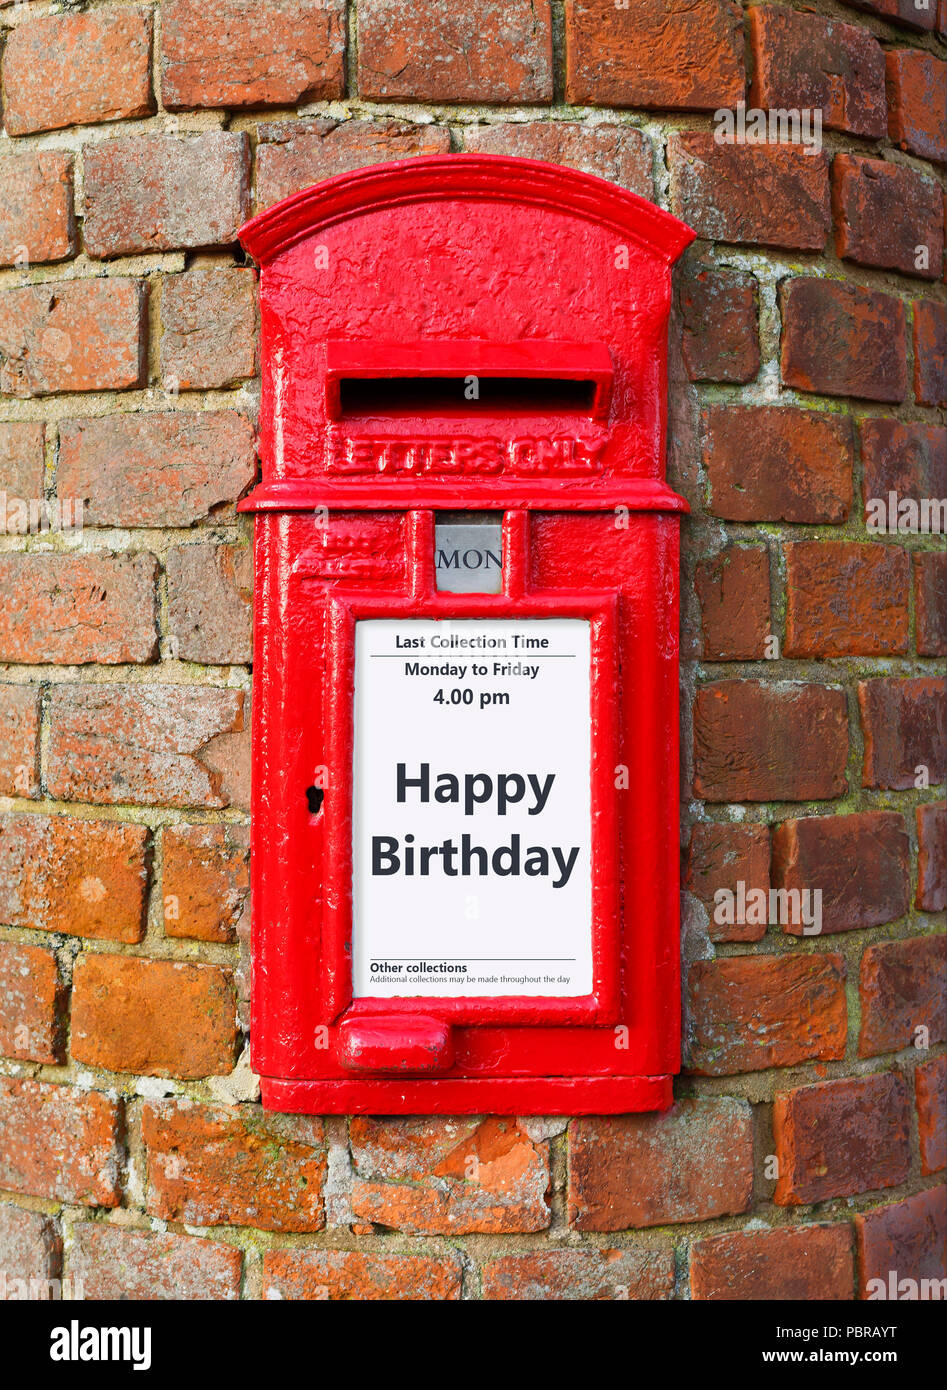 British Post Box Avec Un Message Qui Dit Joyeux Anniversaire Ideal